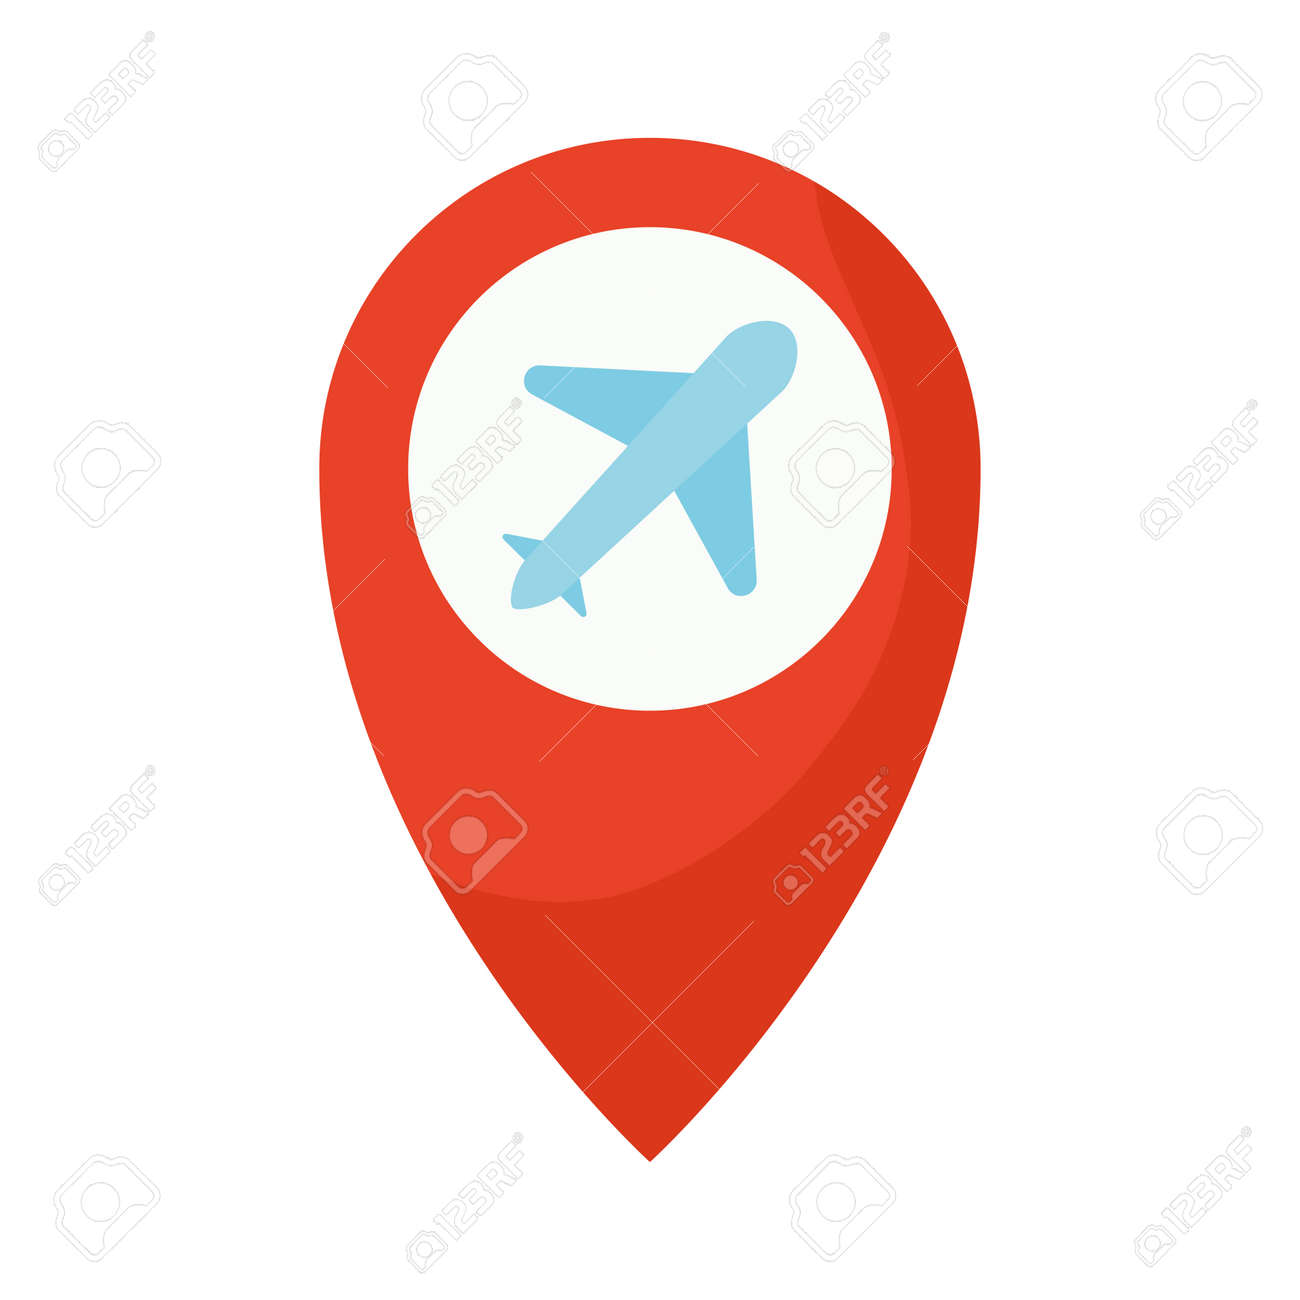 location mark with one airplane icon in it vector illustration design - 161390692